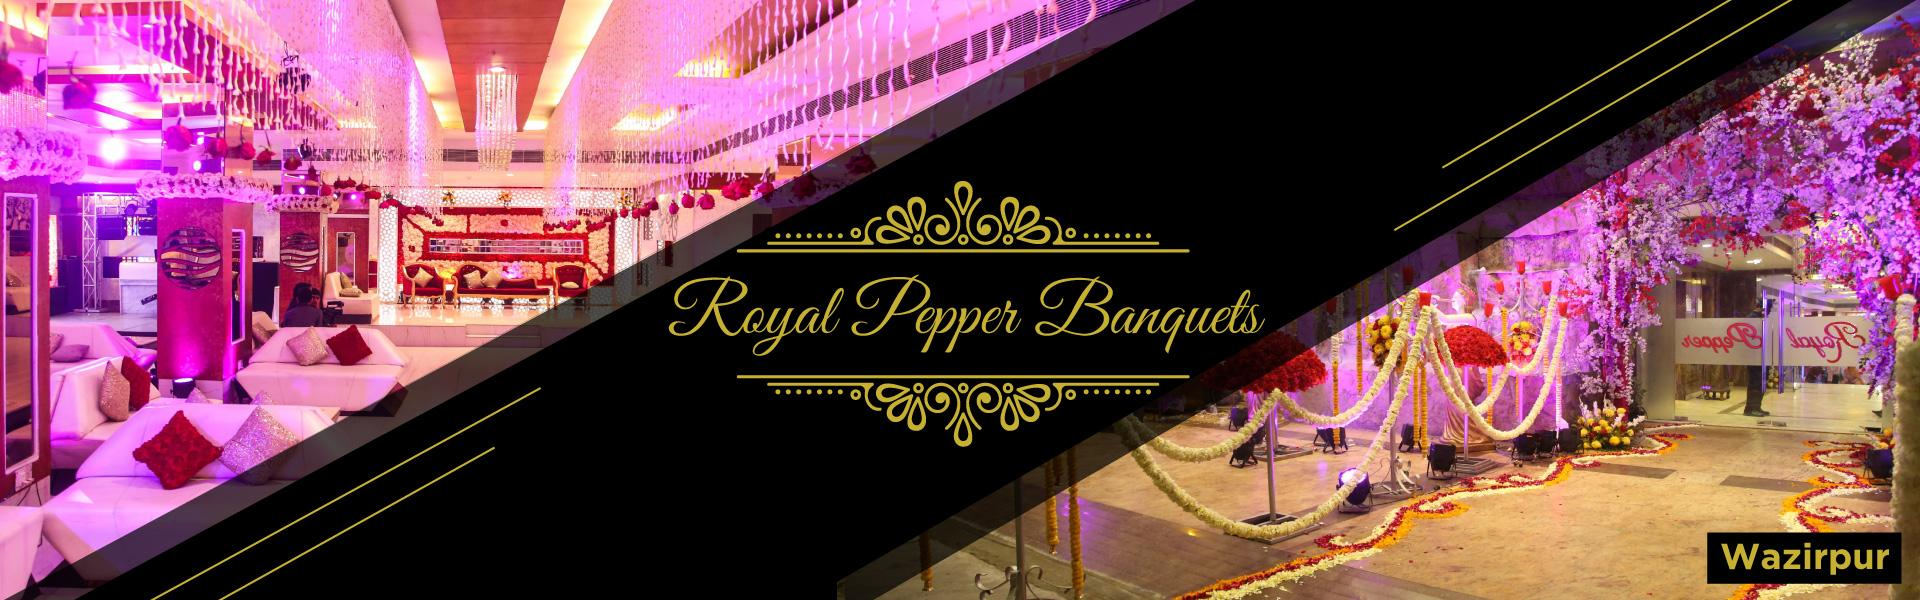 banquets in wazirpur, Banquet Hall in wazirpur, By Royal Pepper Banquets